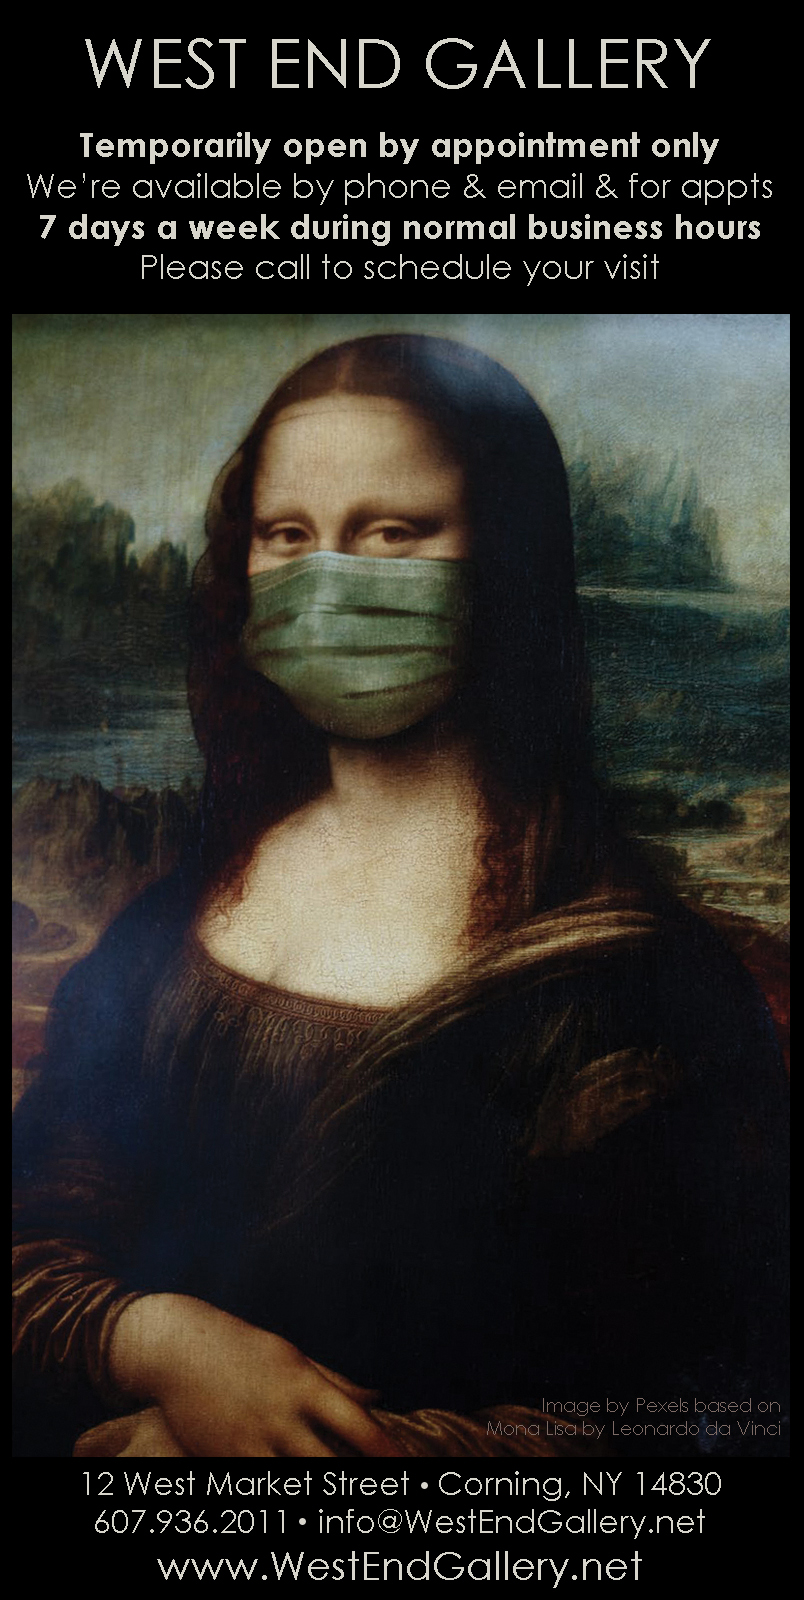 Mona Lisa by Pexels - West End Gallery - Appointments